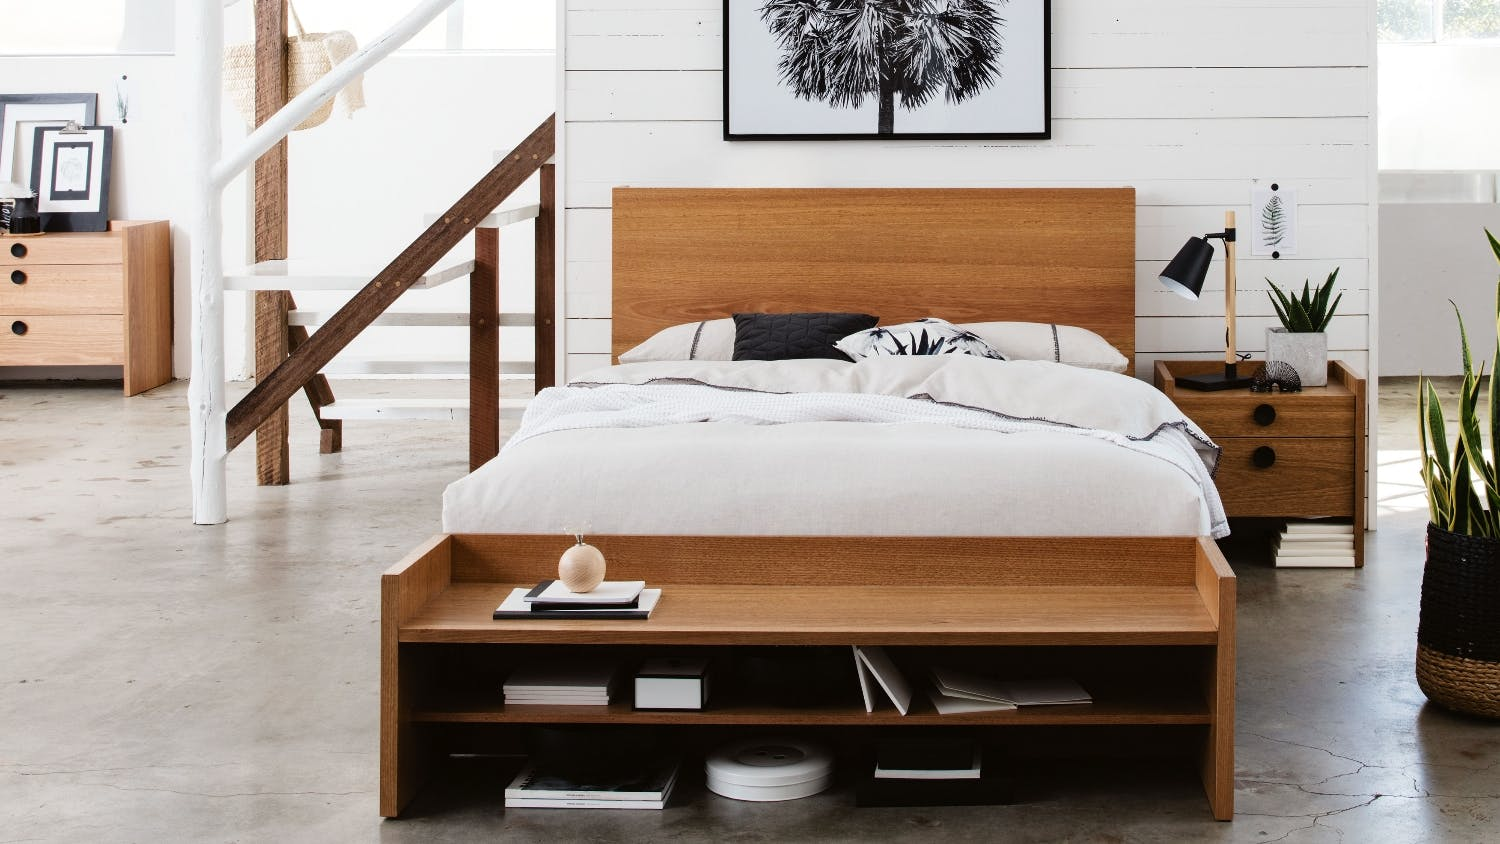 Bench By Bed: Gallery Bed Bench